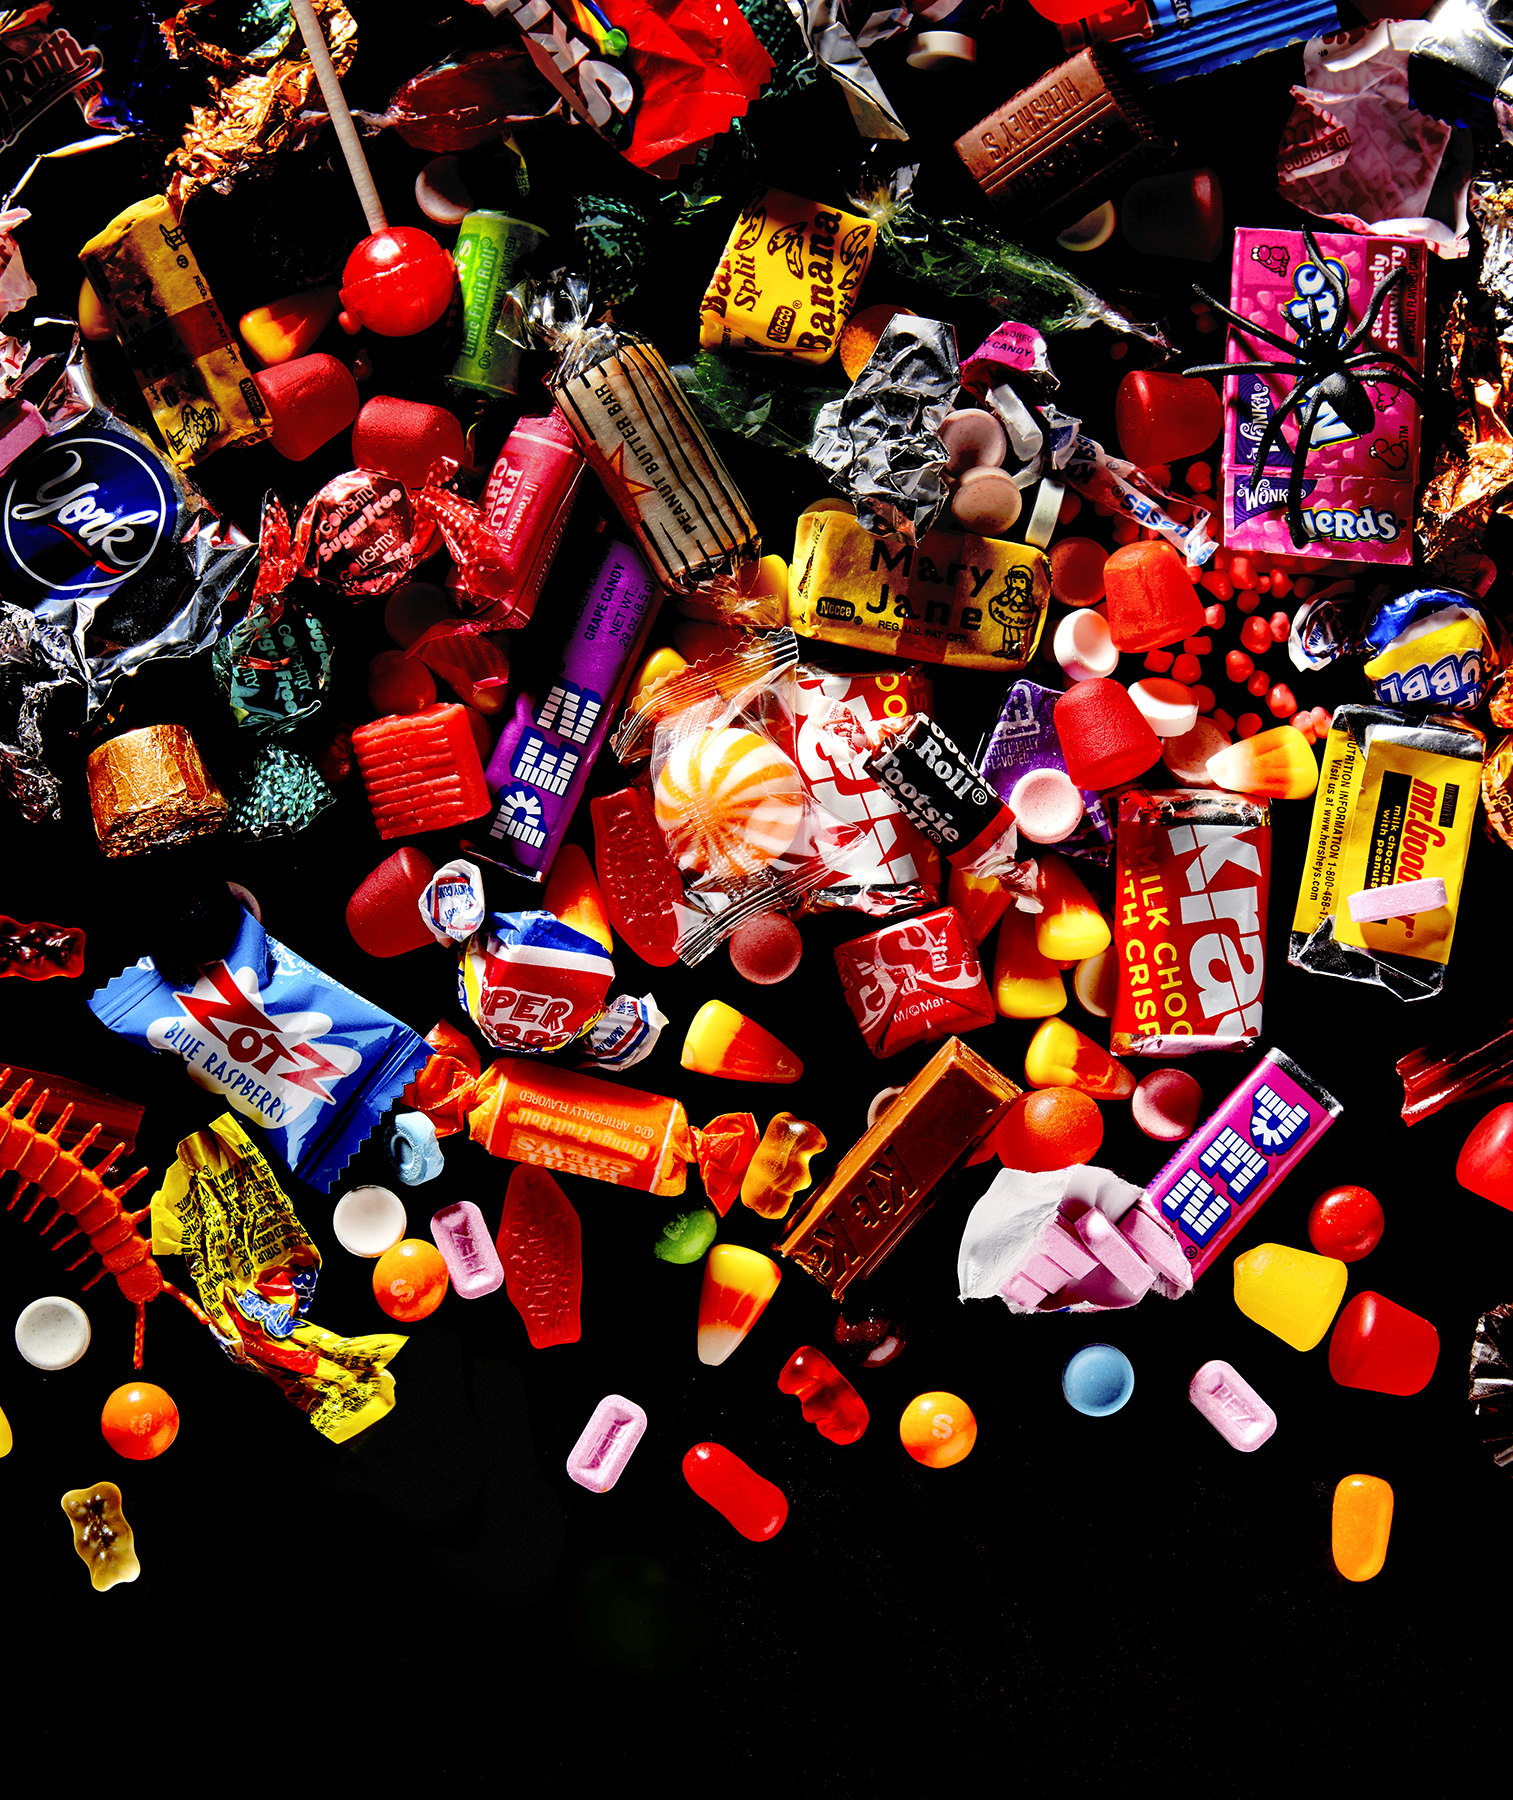 Why Do We Go Trick-or-Treating?